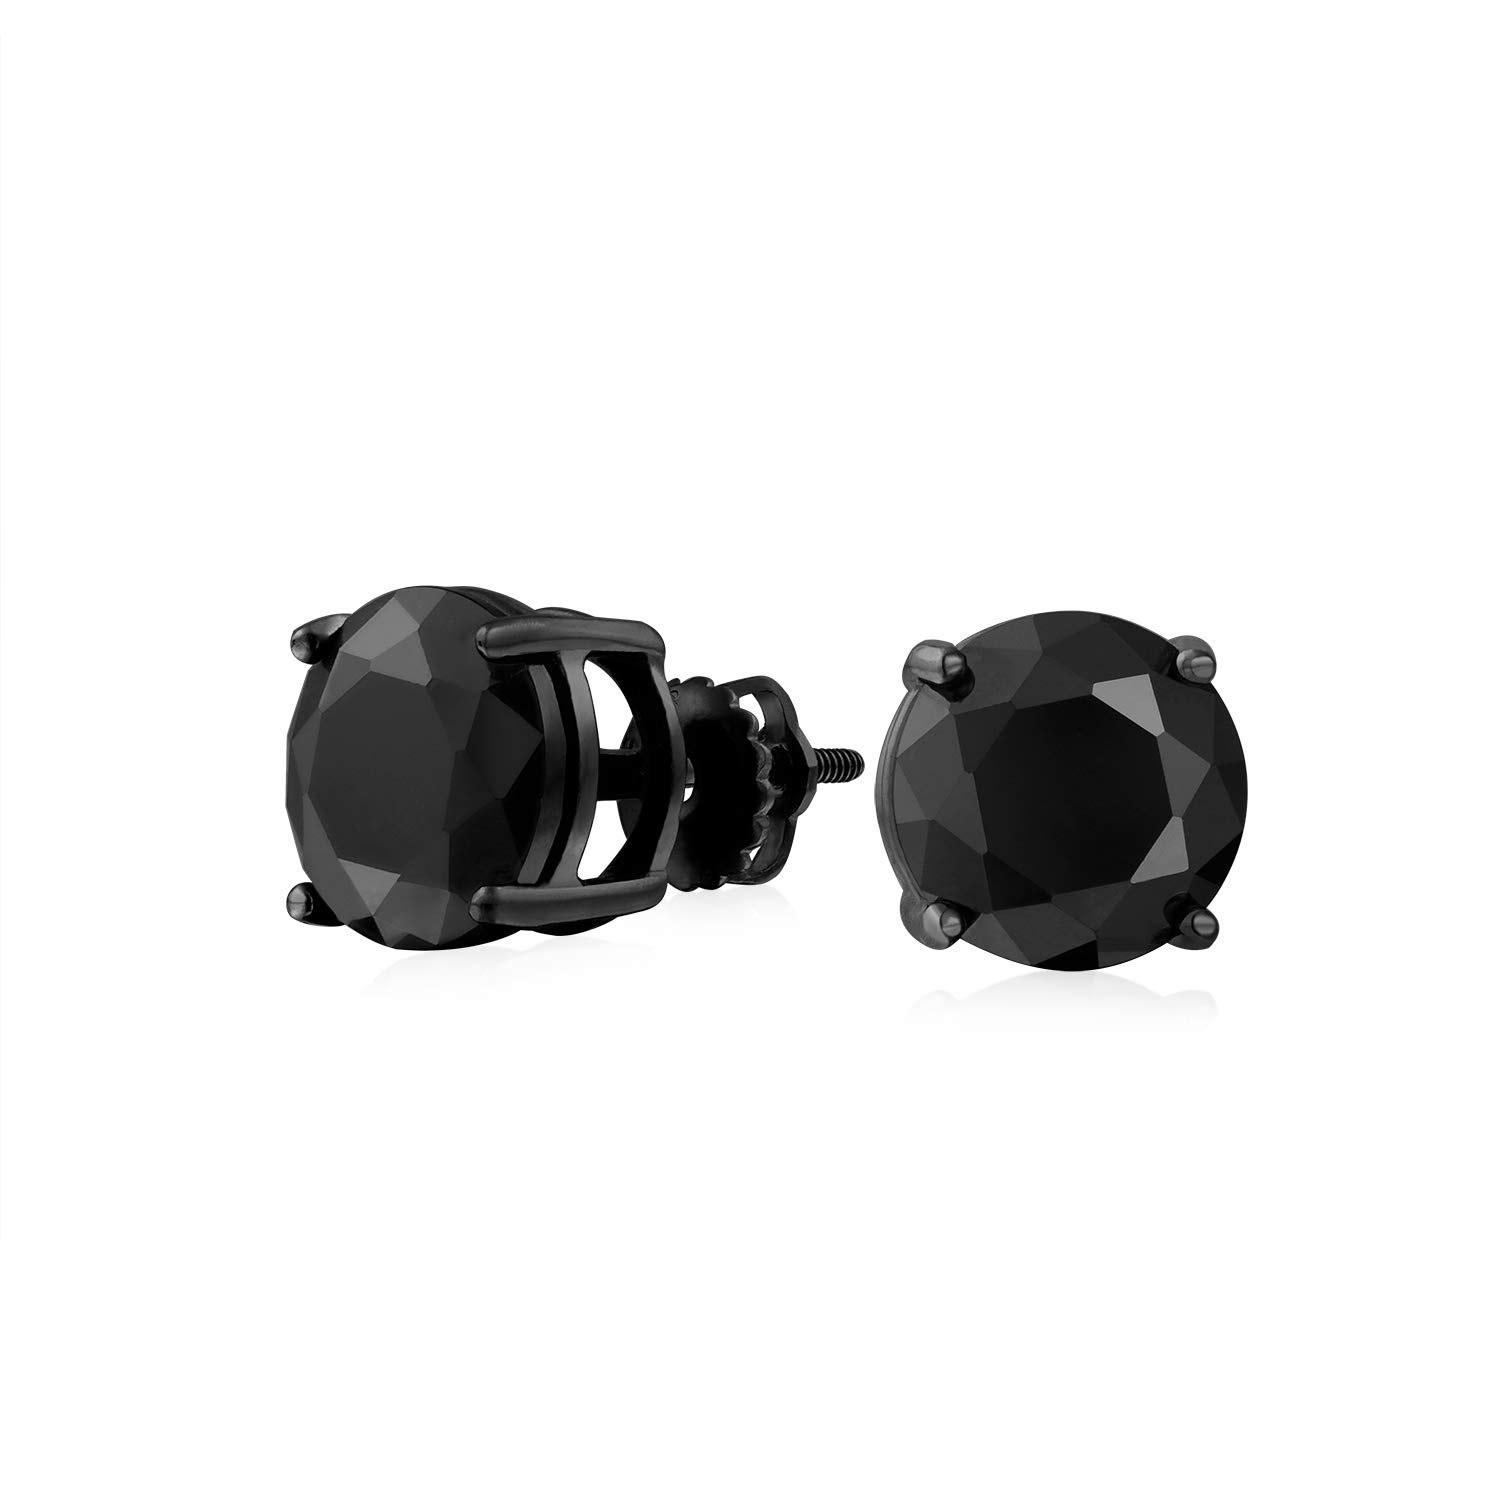 49cfe205c09b0 .75CT Black On Black Round Solitaire Cubic Zirconia Stud Earrings For Men  Women CZ Screw Back Plated 925 Sterling Silver